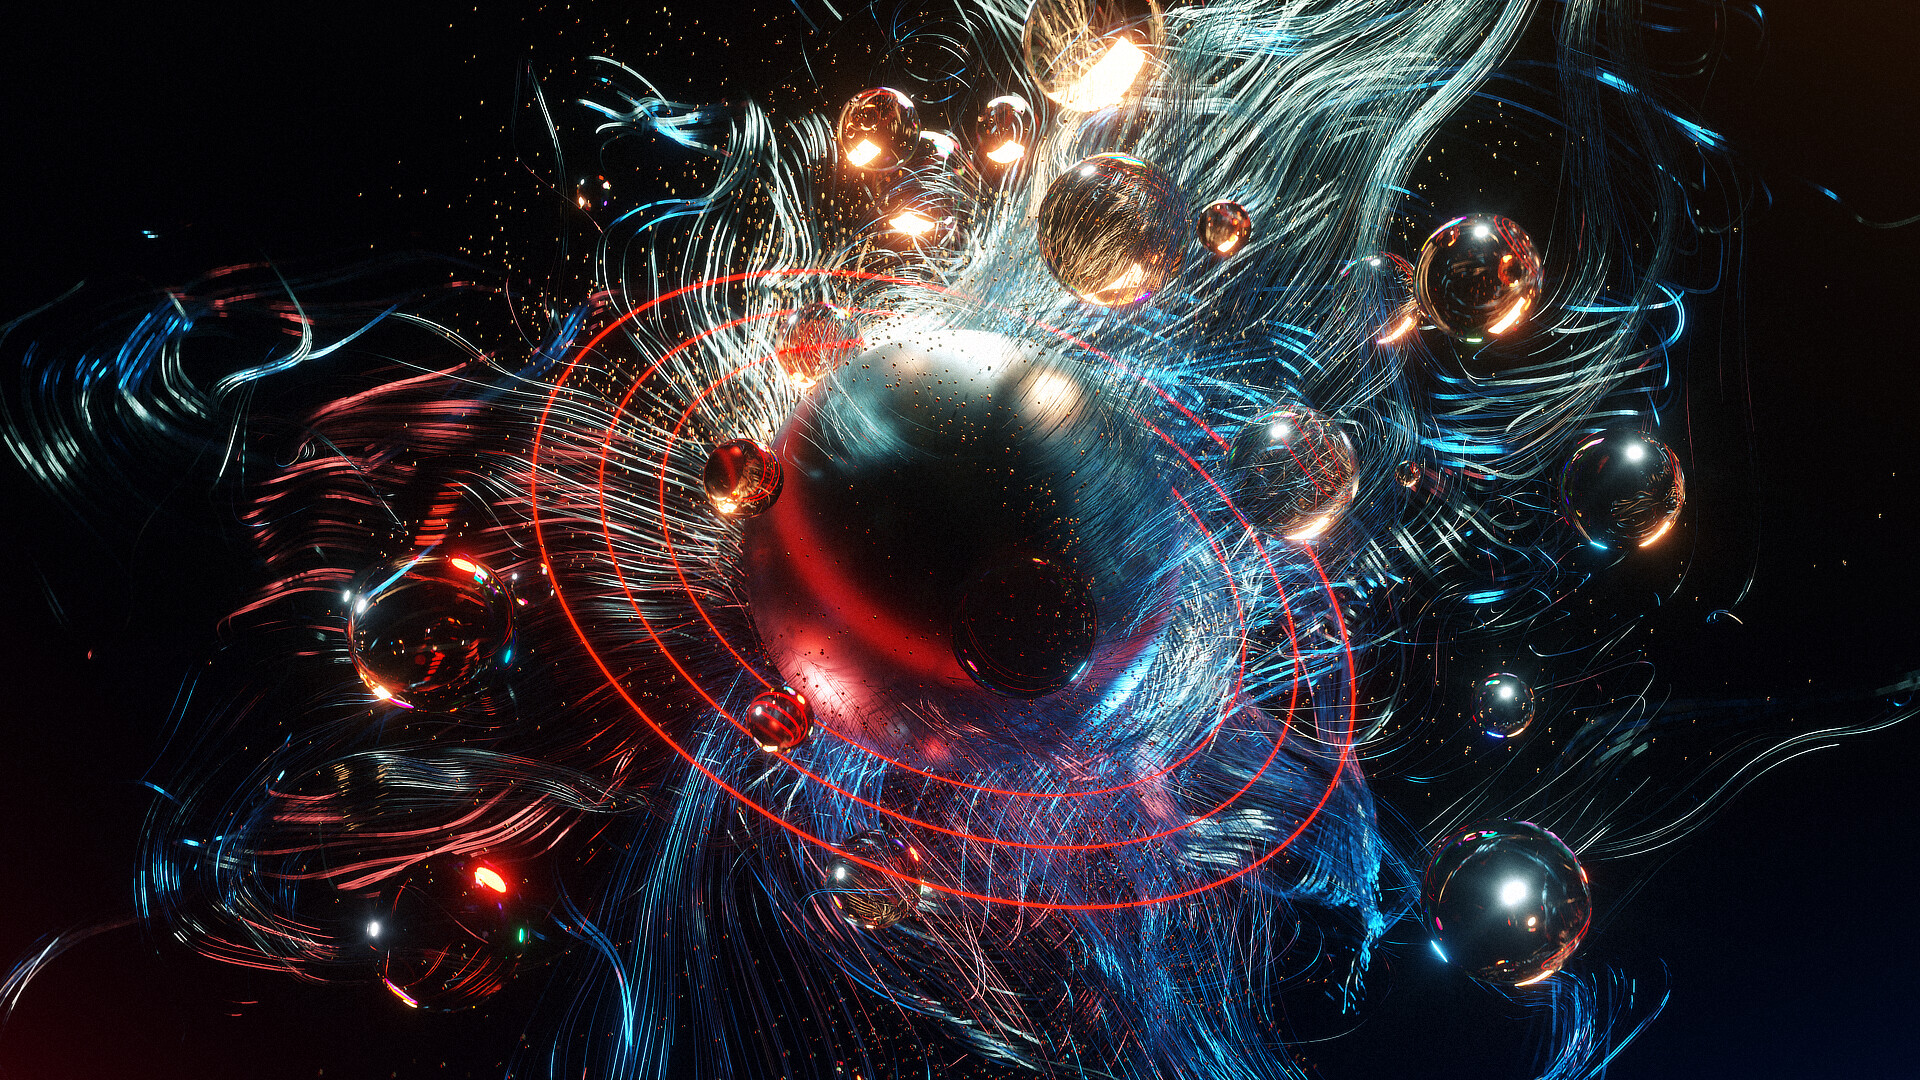 Test image establishing workflows between Modo and Blender's particle systems